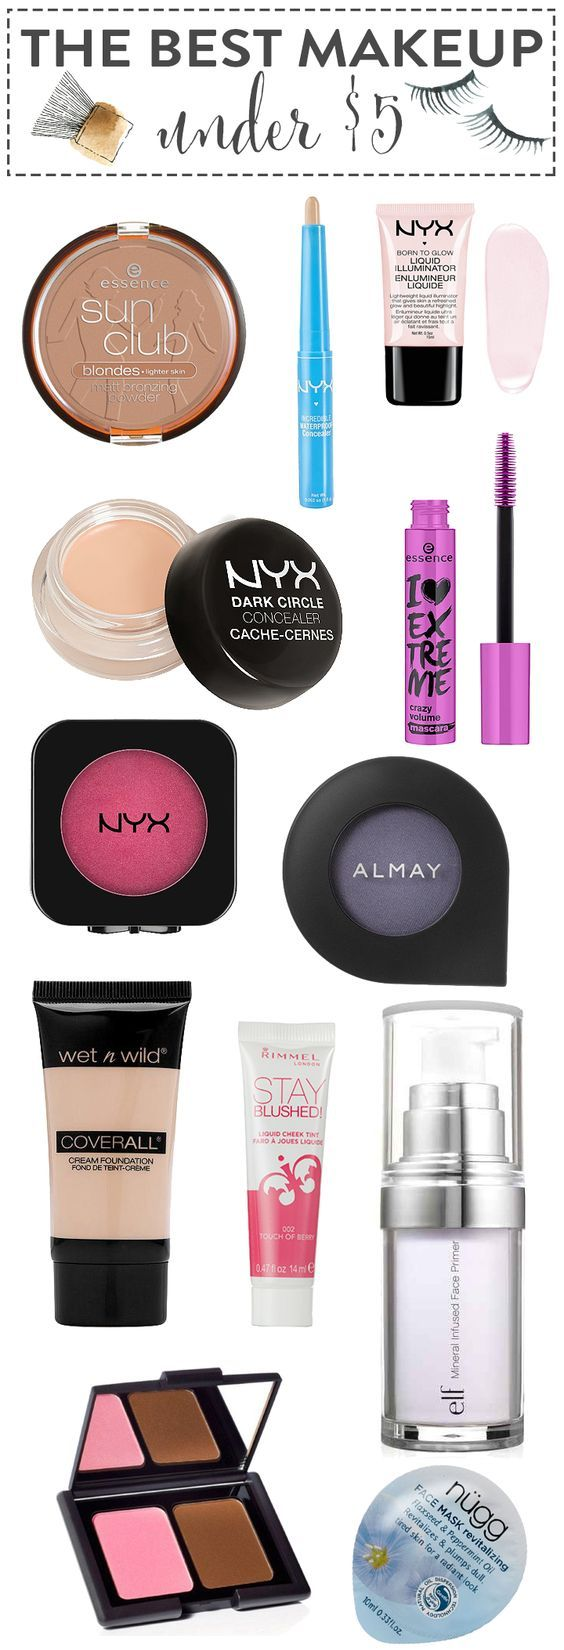 7 Five Dollar Makeup Products You'll Wish You'd Known